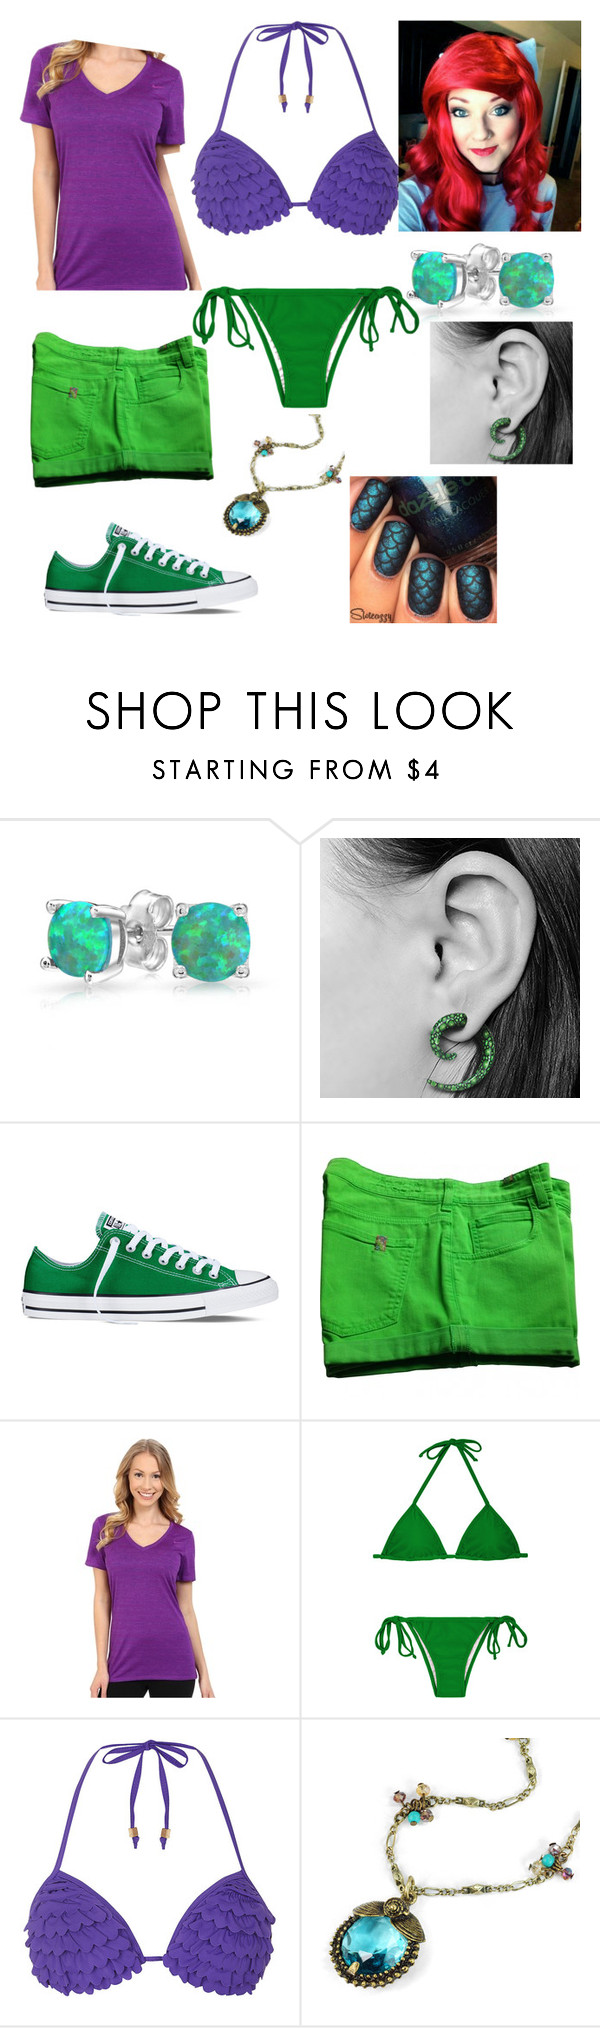 """""""The Little Mermaid (Ariel)"""" by hayleyhudson62 on Polyvore featuring Bling Jewelry, Converse, Notify, NIKE, Dorothy Perkins and Sweet Romance"""